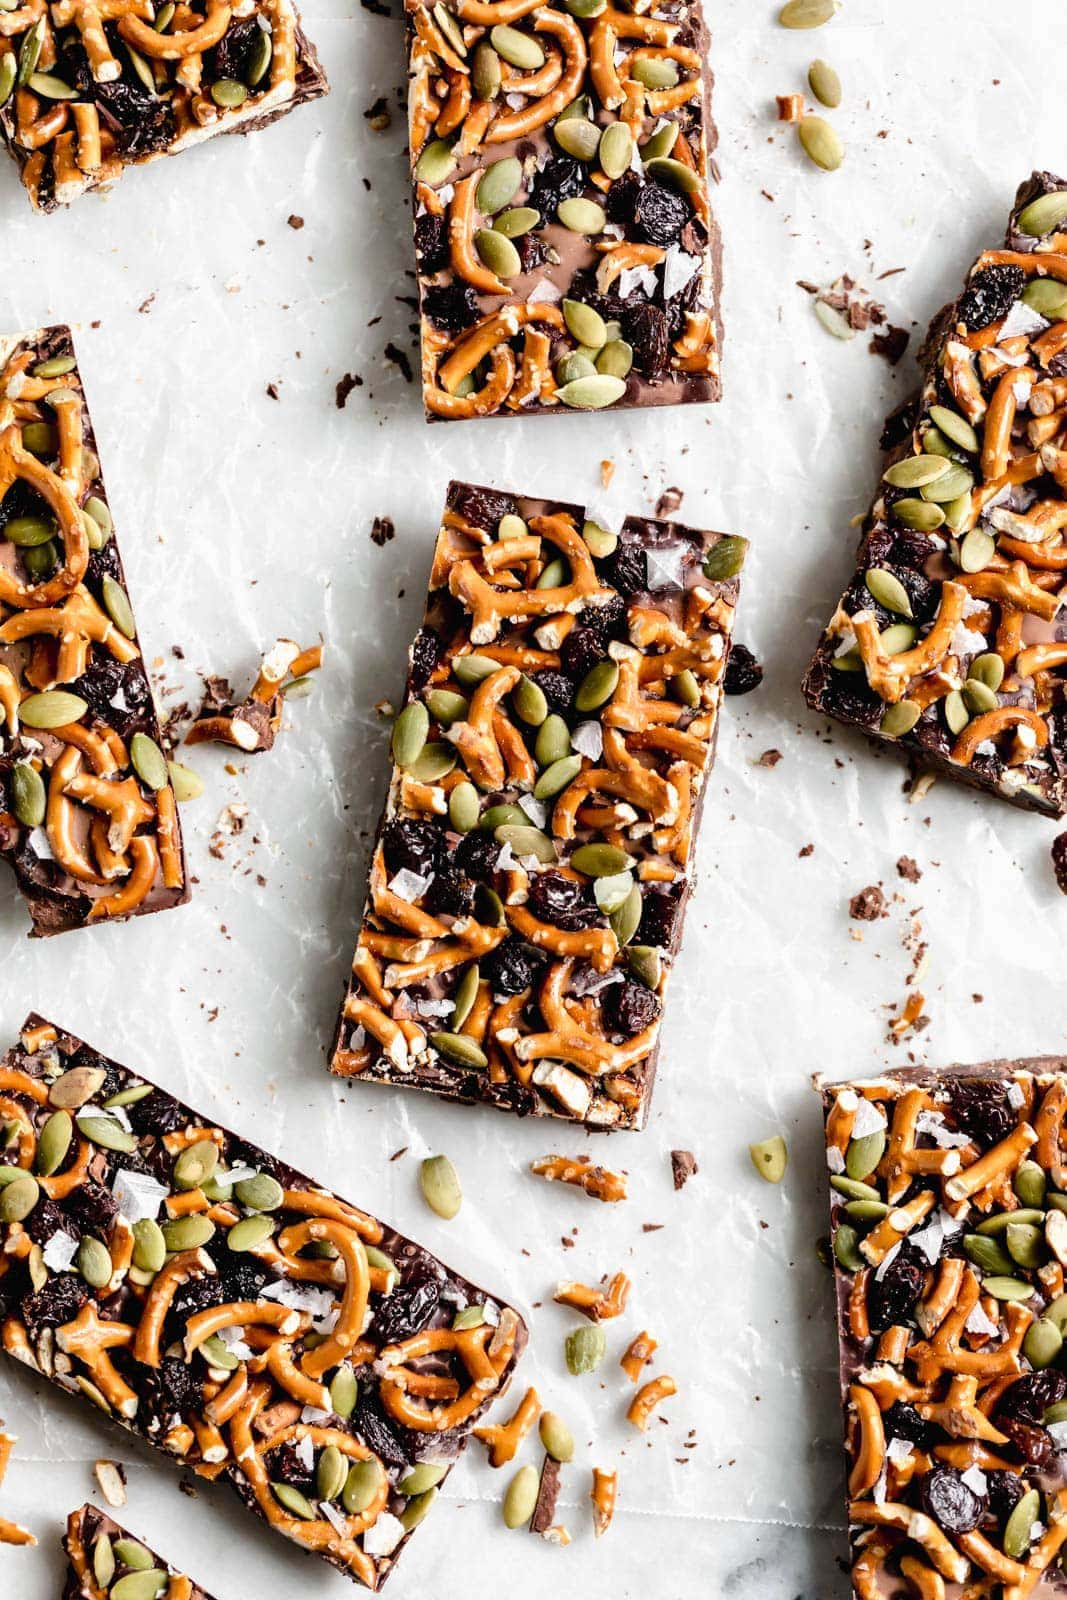 A ridiculously cozy fall dark chocolate bark made with 86% chocolate, pumpkin seeds, pretzels, & dried fruit. Did I mention it's nearly 1/2 inch thick?!